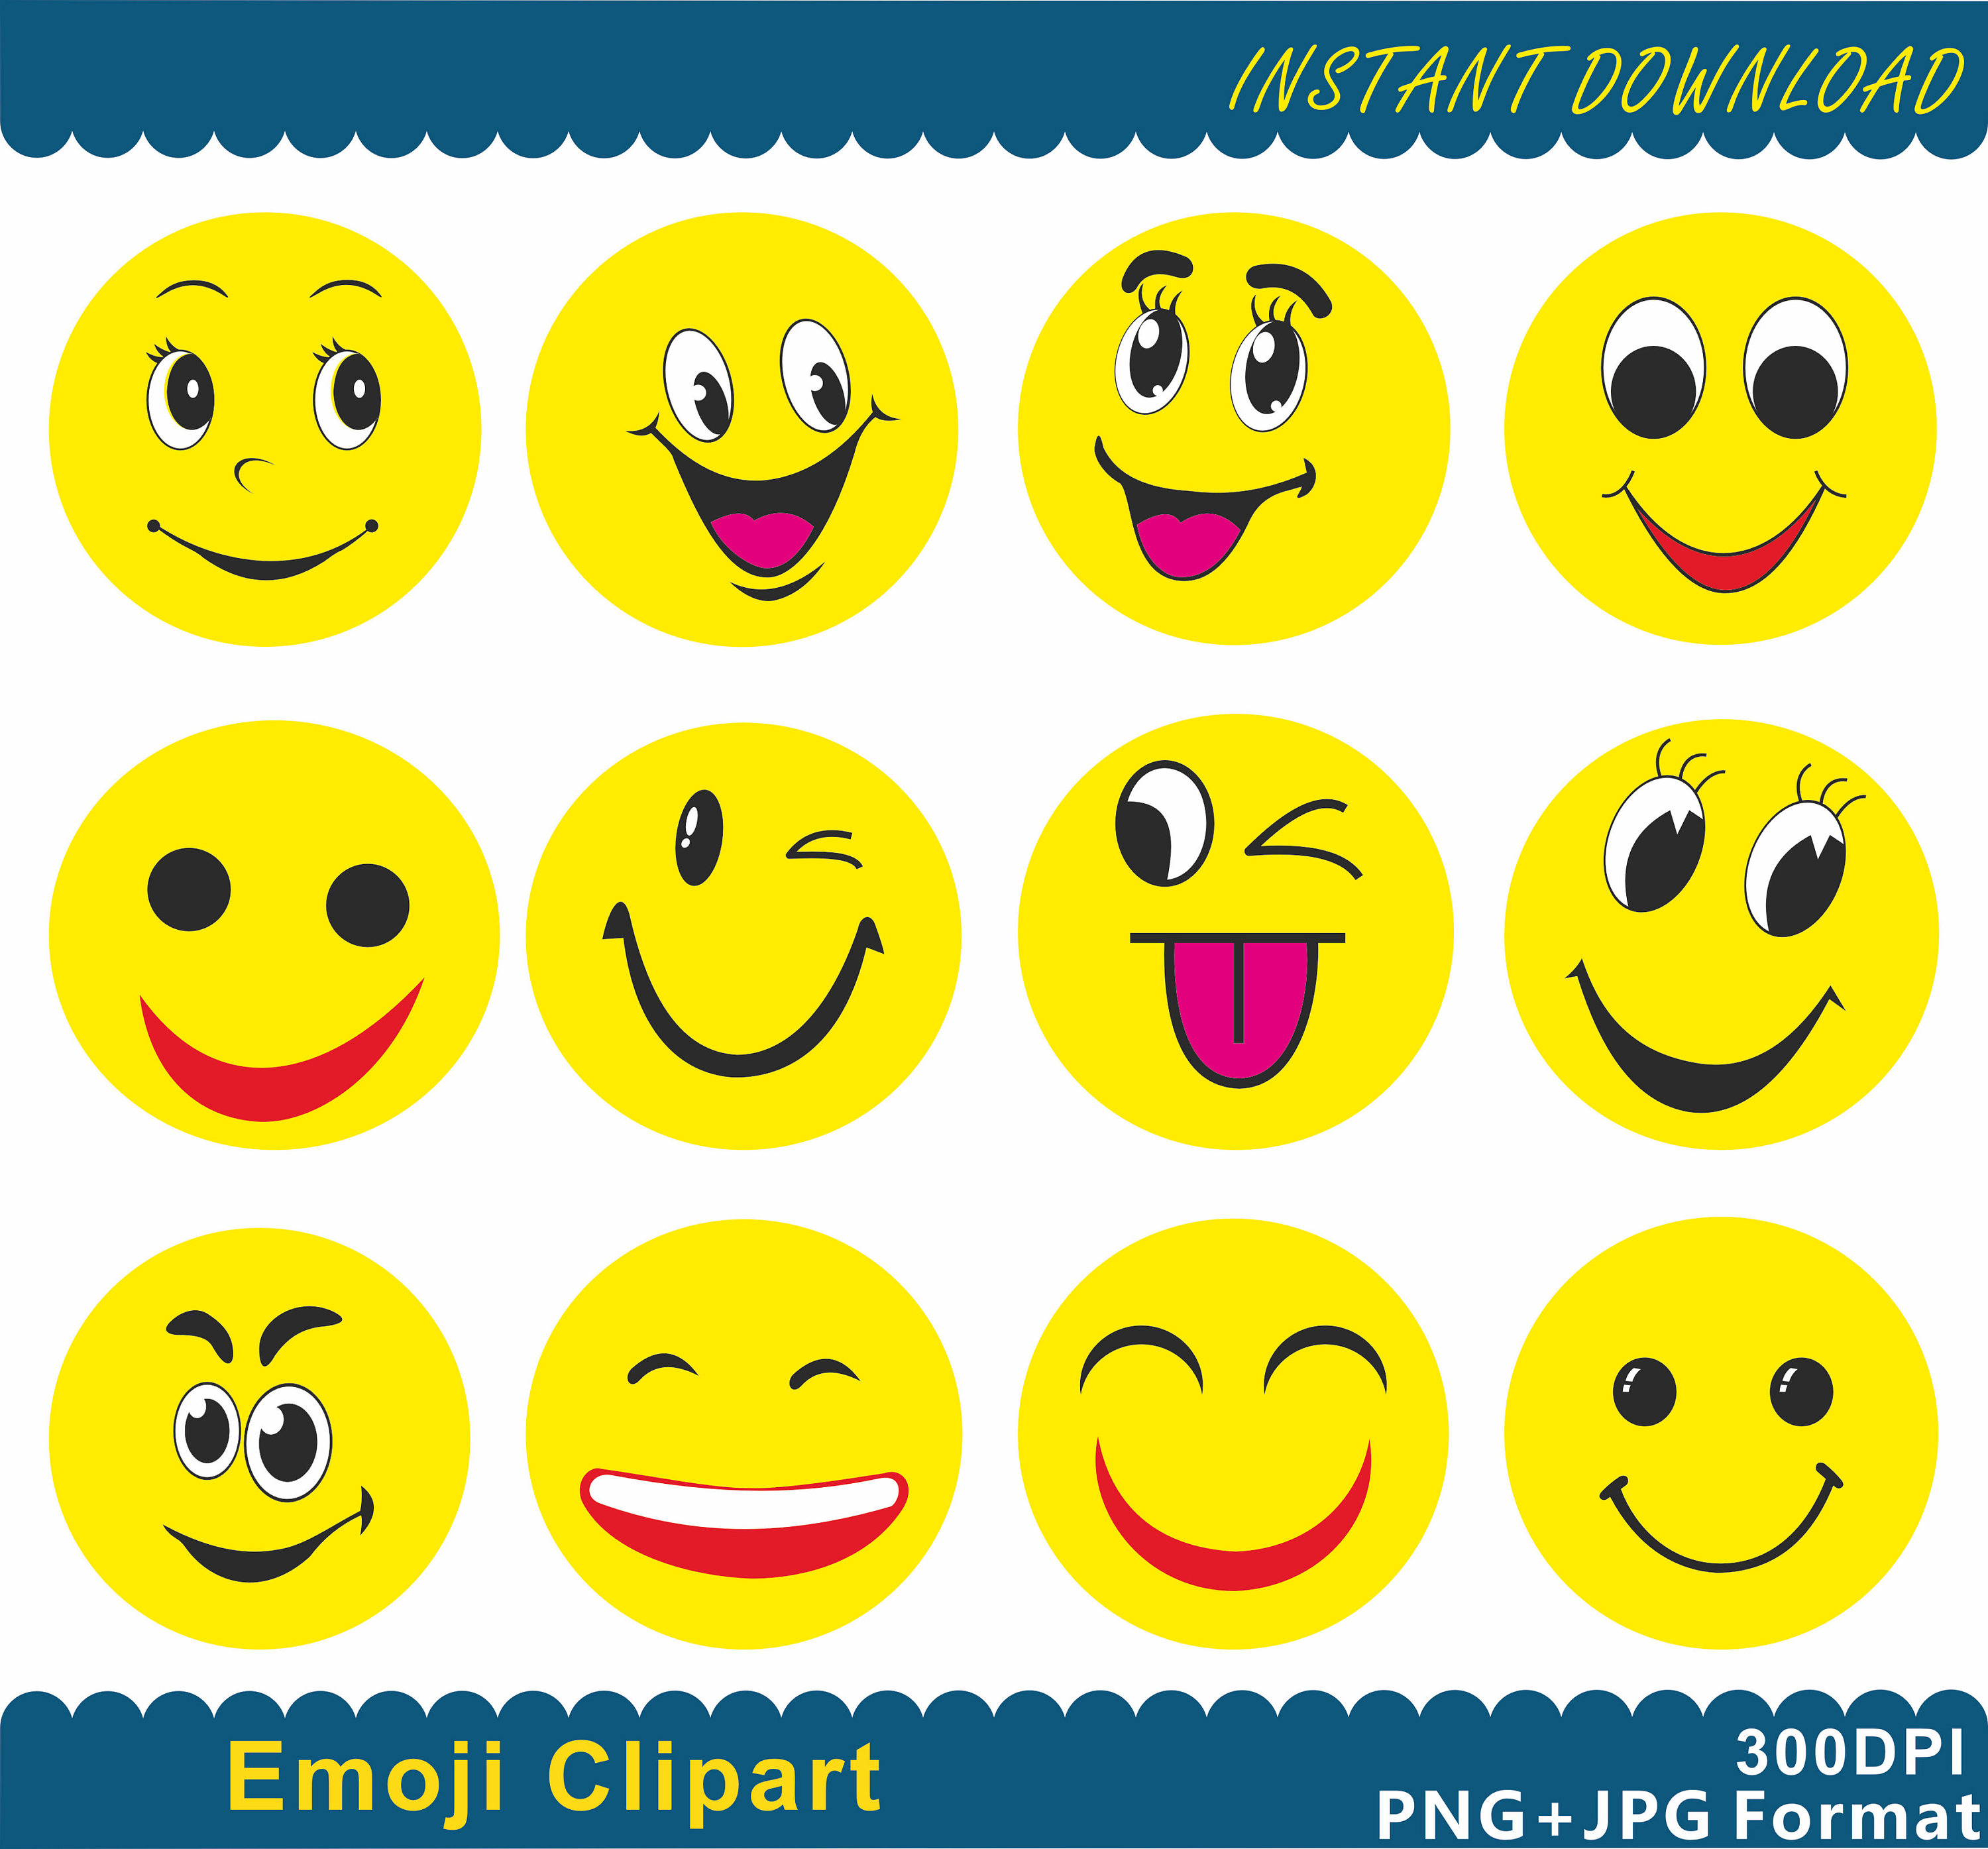 Smileys clipart emoji This Face Smiley PNG is